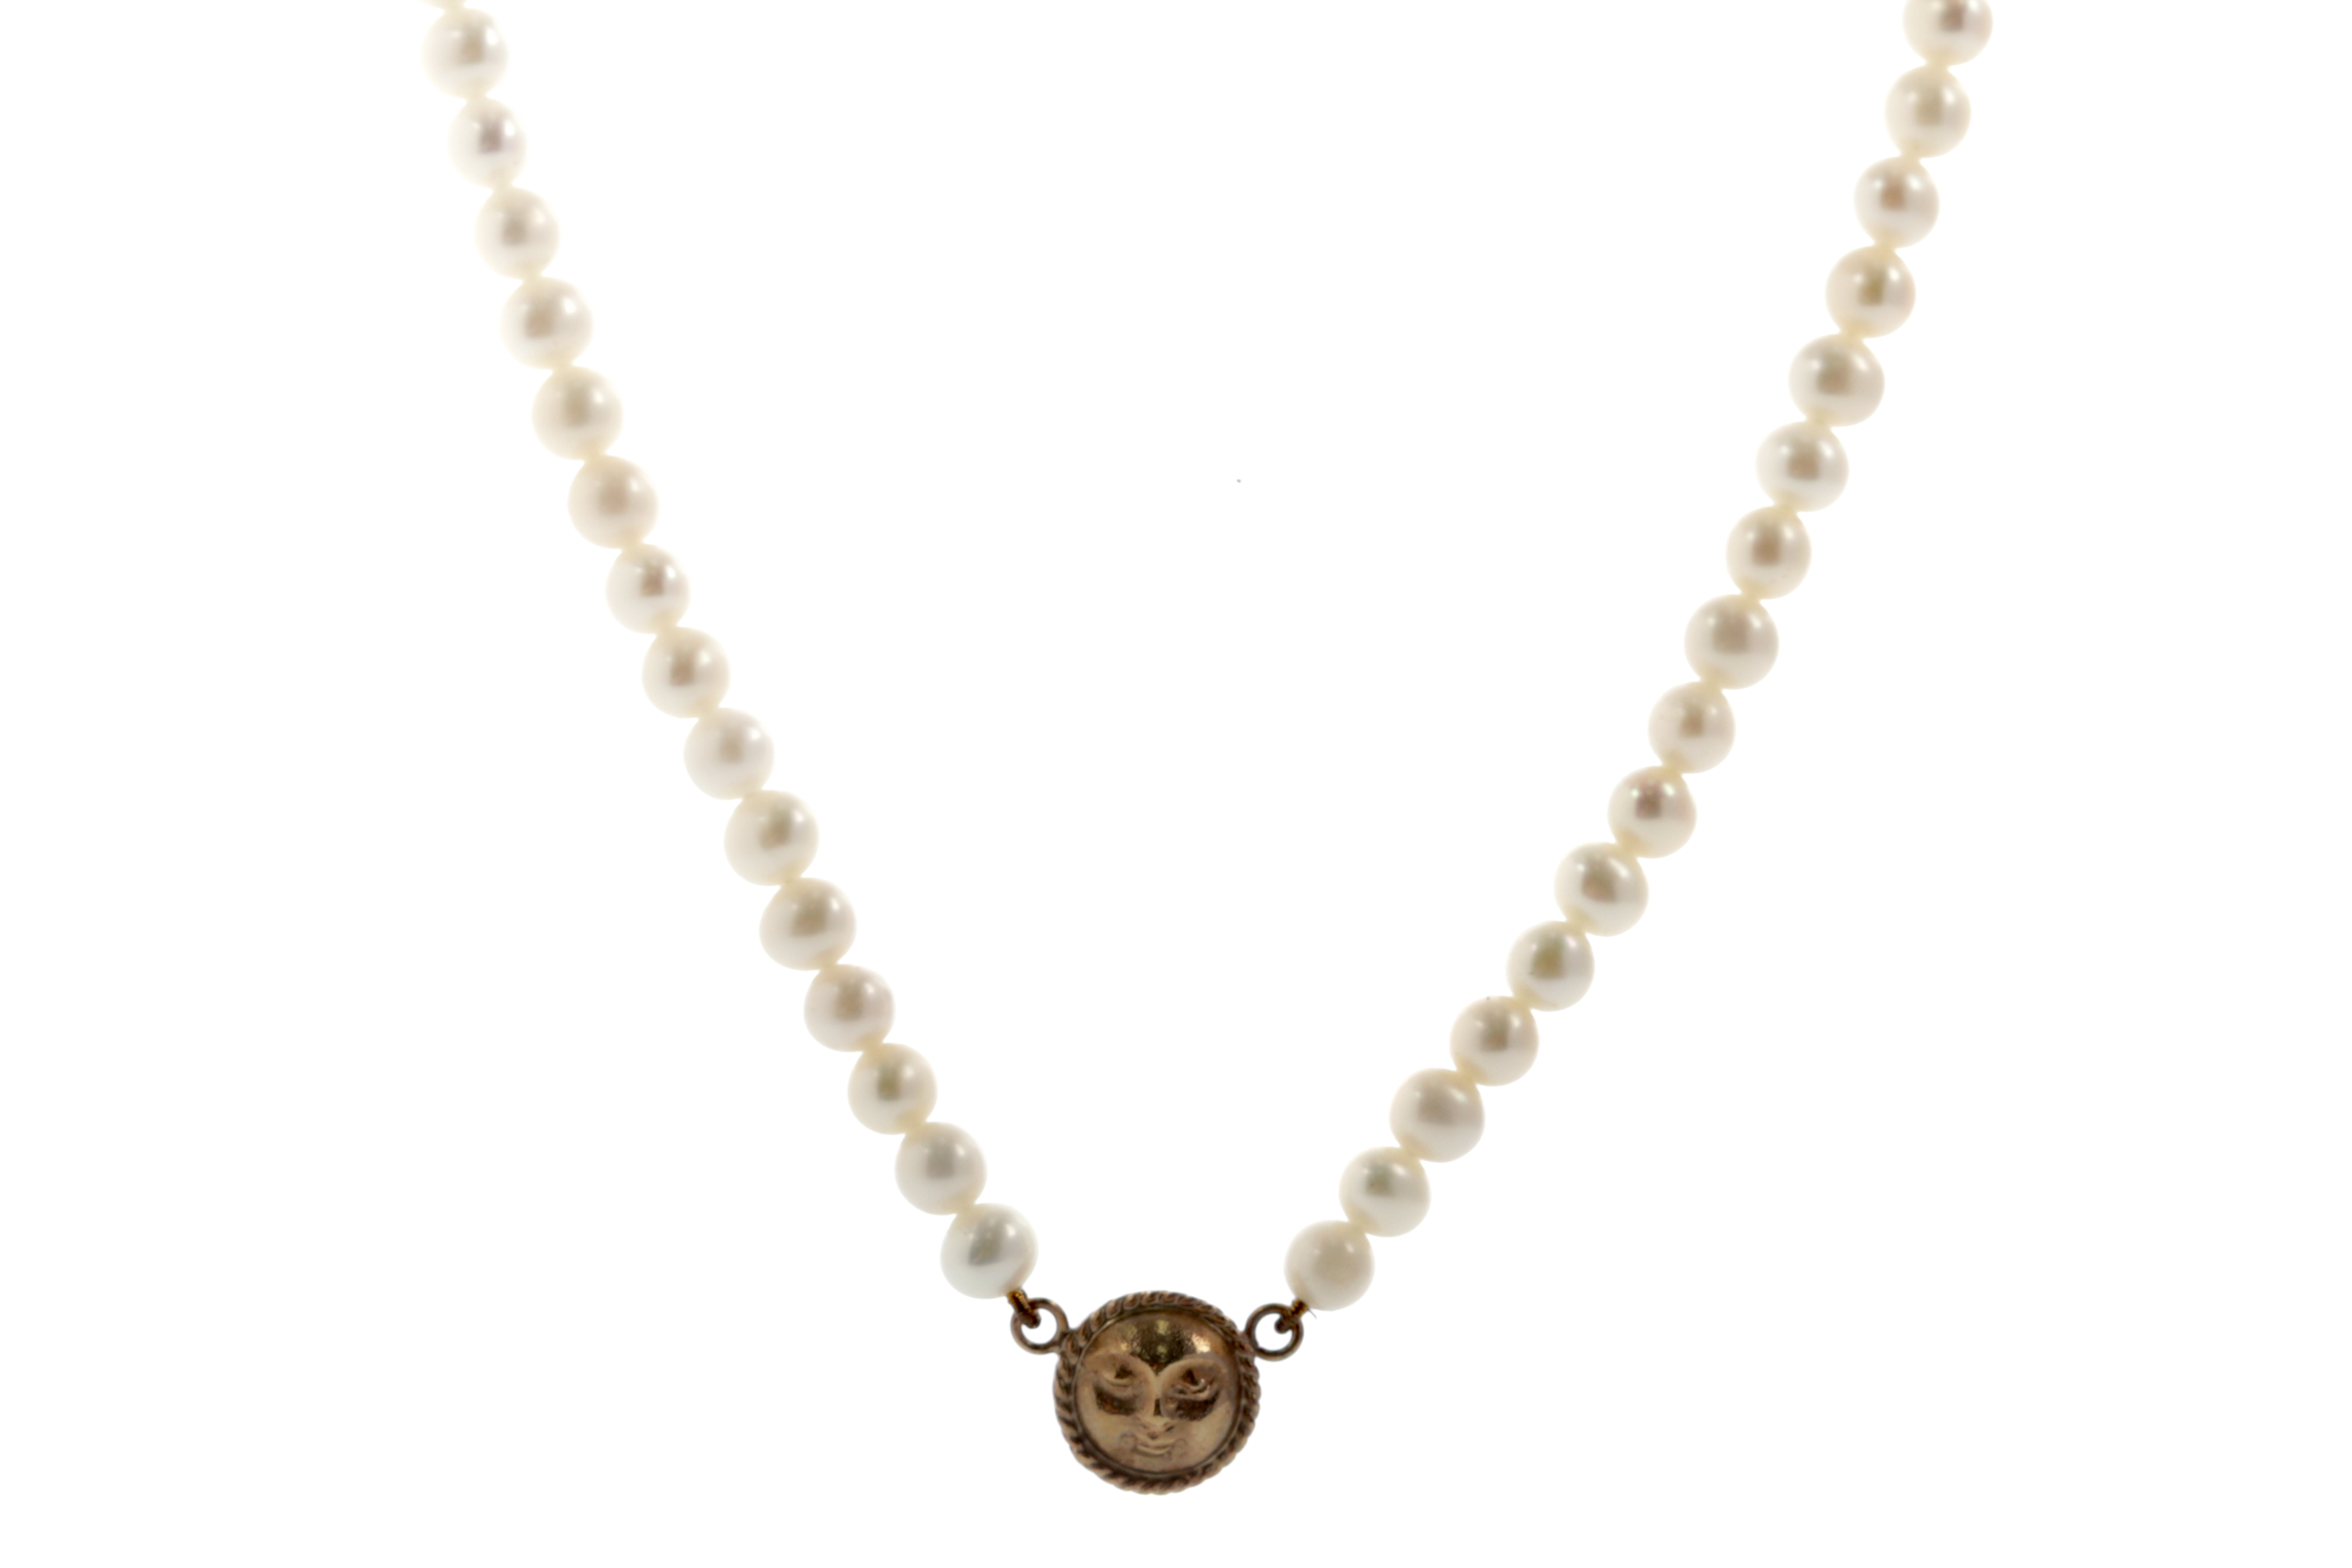 A FAUX PEARL NECKLACE WITH GOLD MOON CHARM